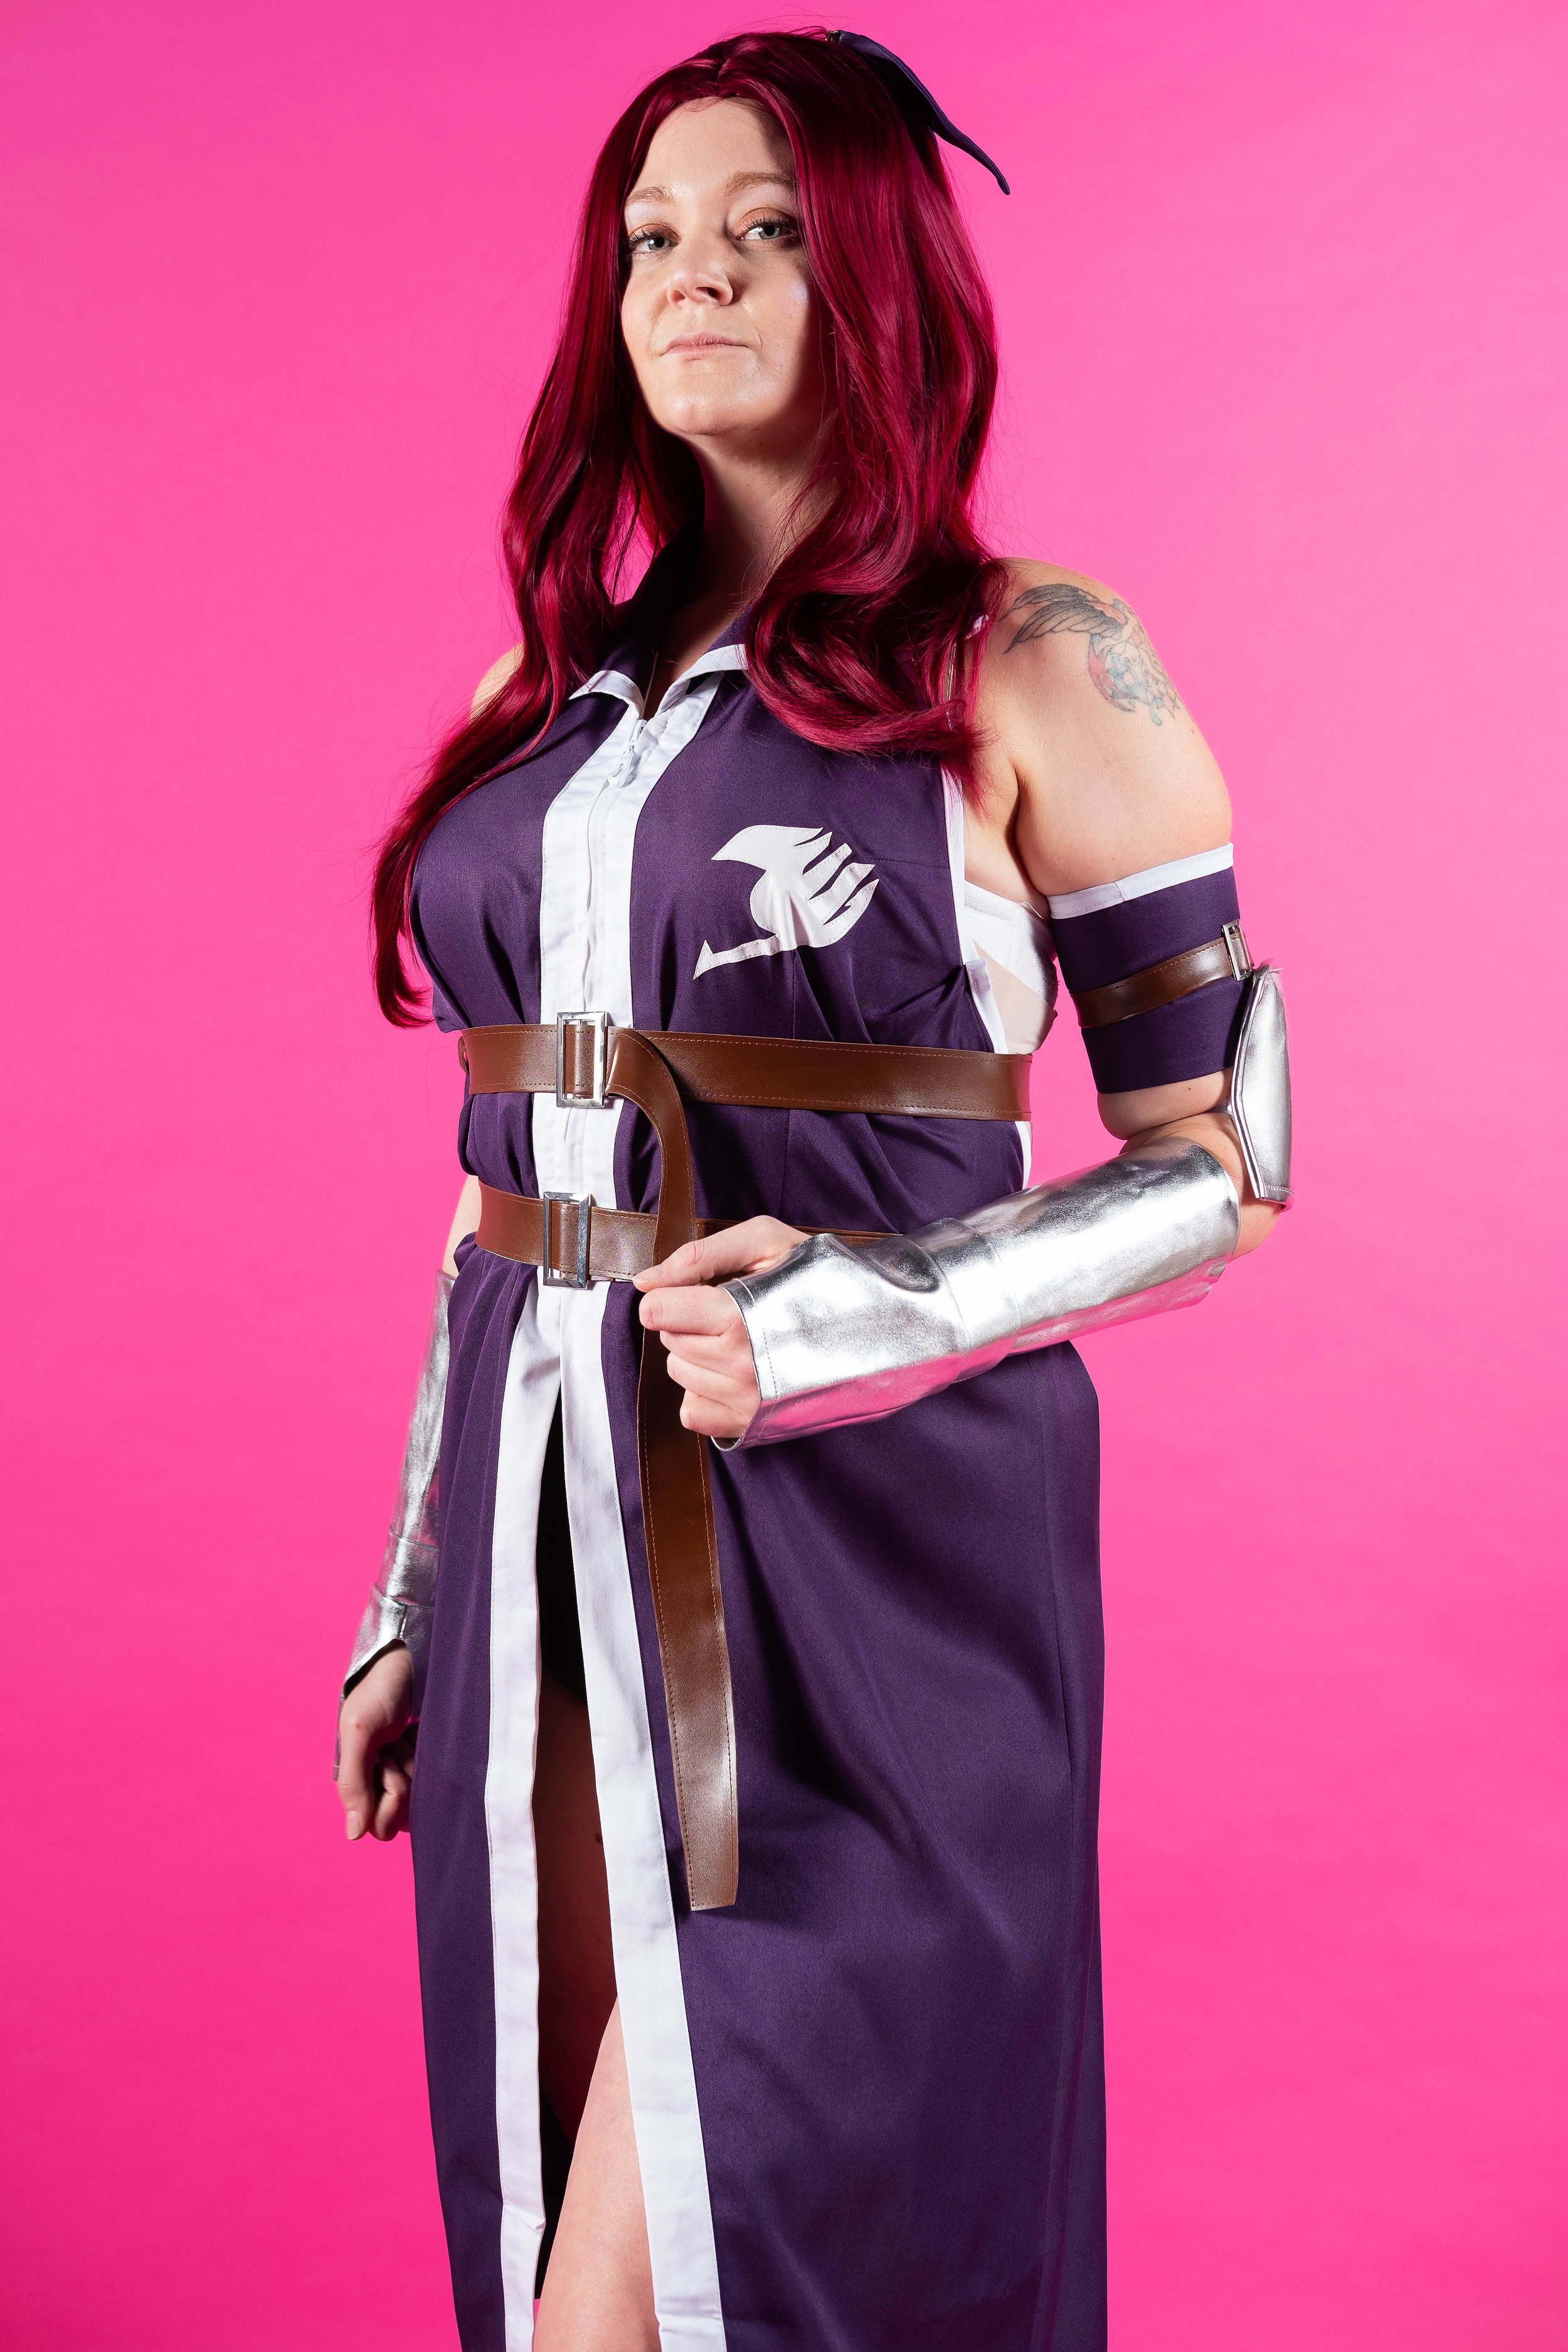 Allybelle Cosplay cosplaying as Erza Scarlet from Fairy Tail